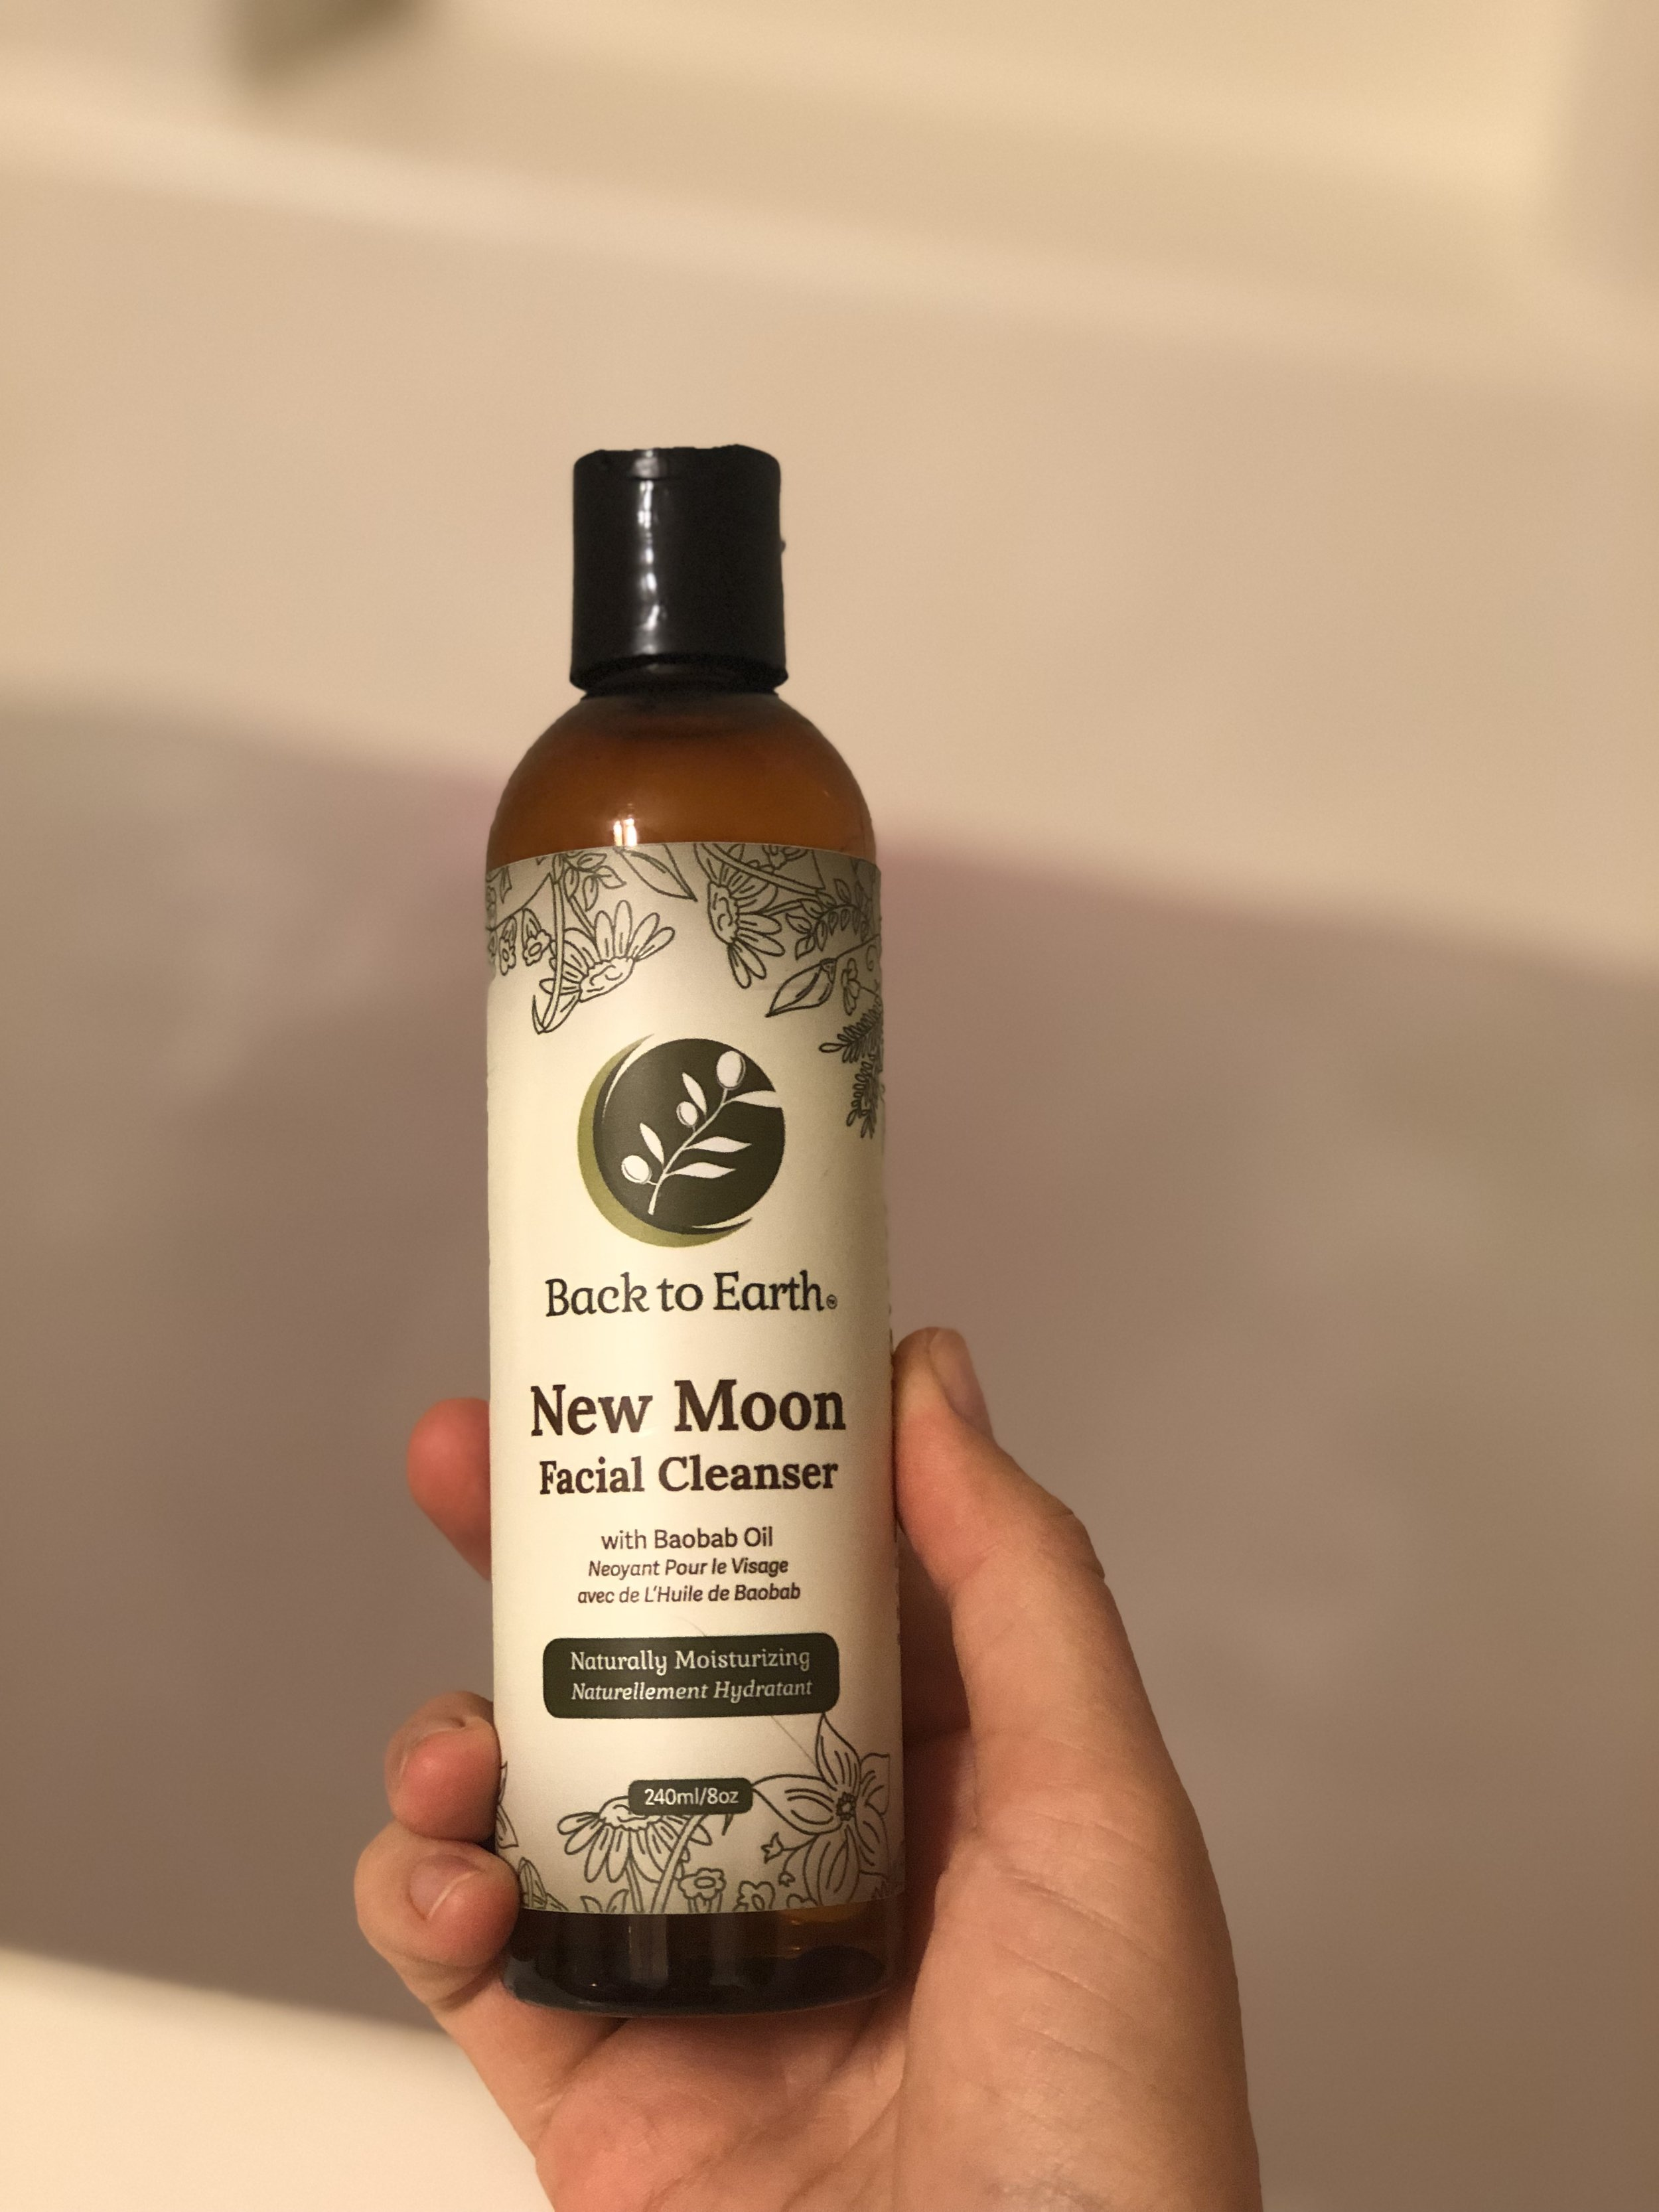 this is my face cleanser right now. It is SO clean feeling and I LOVE THAT. It smells minty and feels so good when you wash your neck and chest before bed! I also use this on my upper arms, upper back and chest and where I'm more prone to get pimples from all the sweatiness of my life.